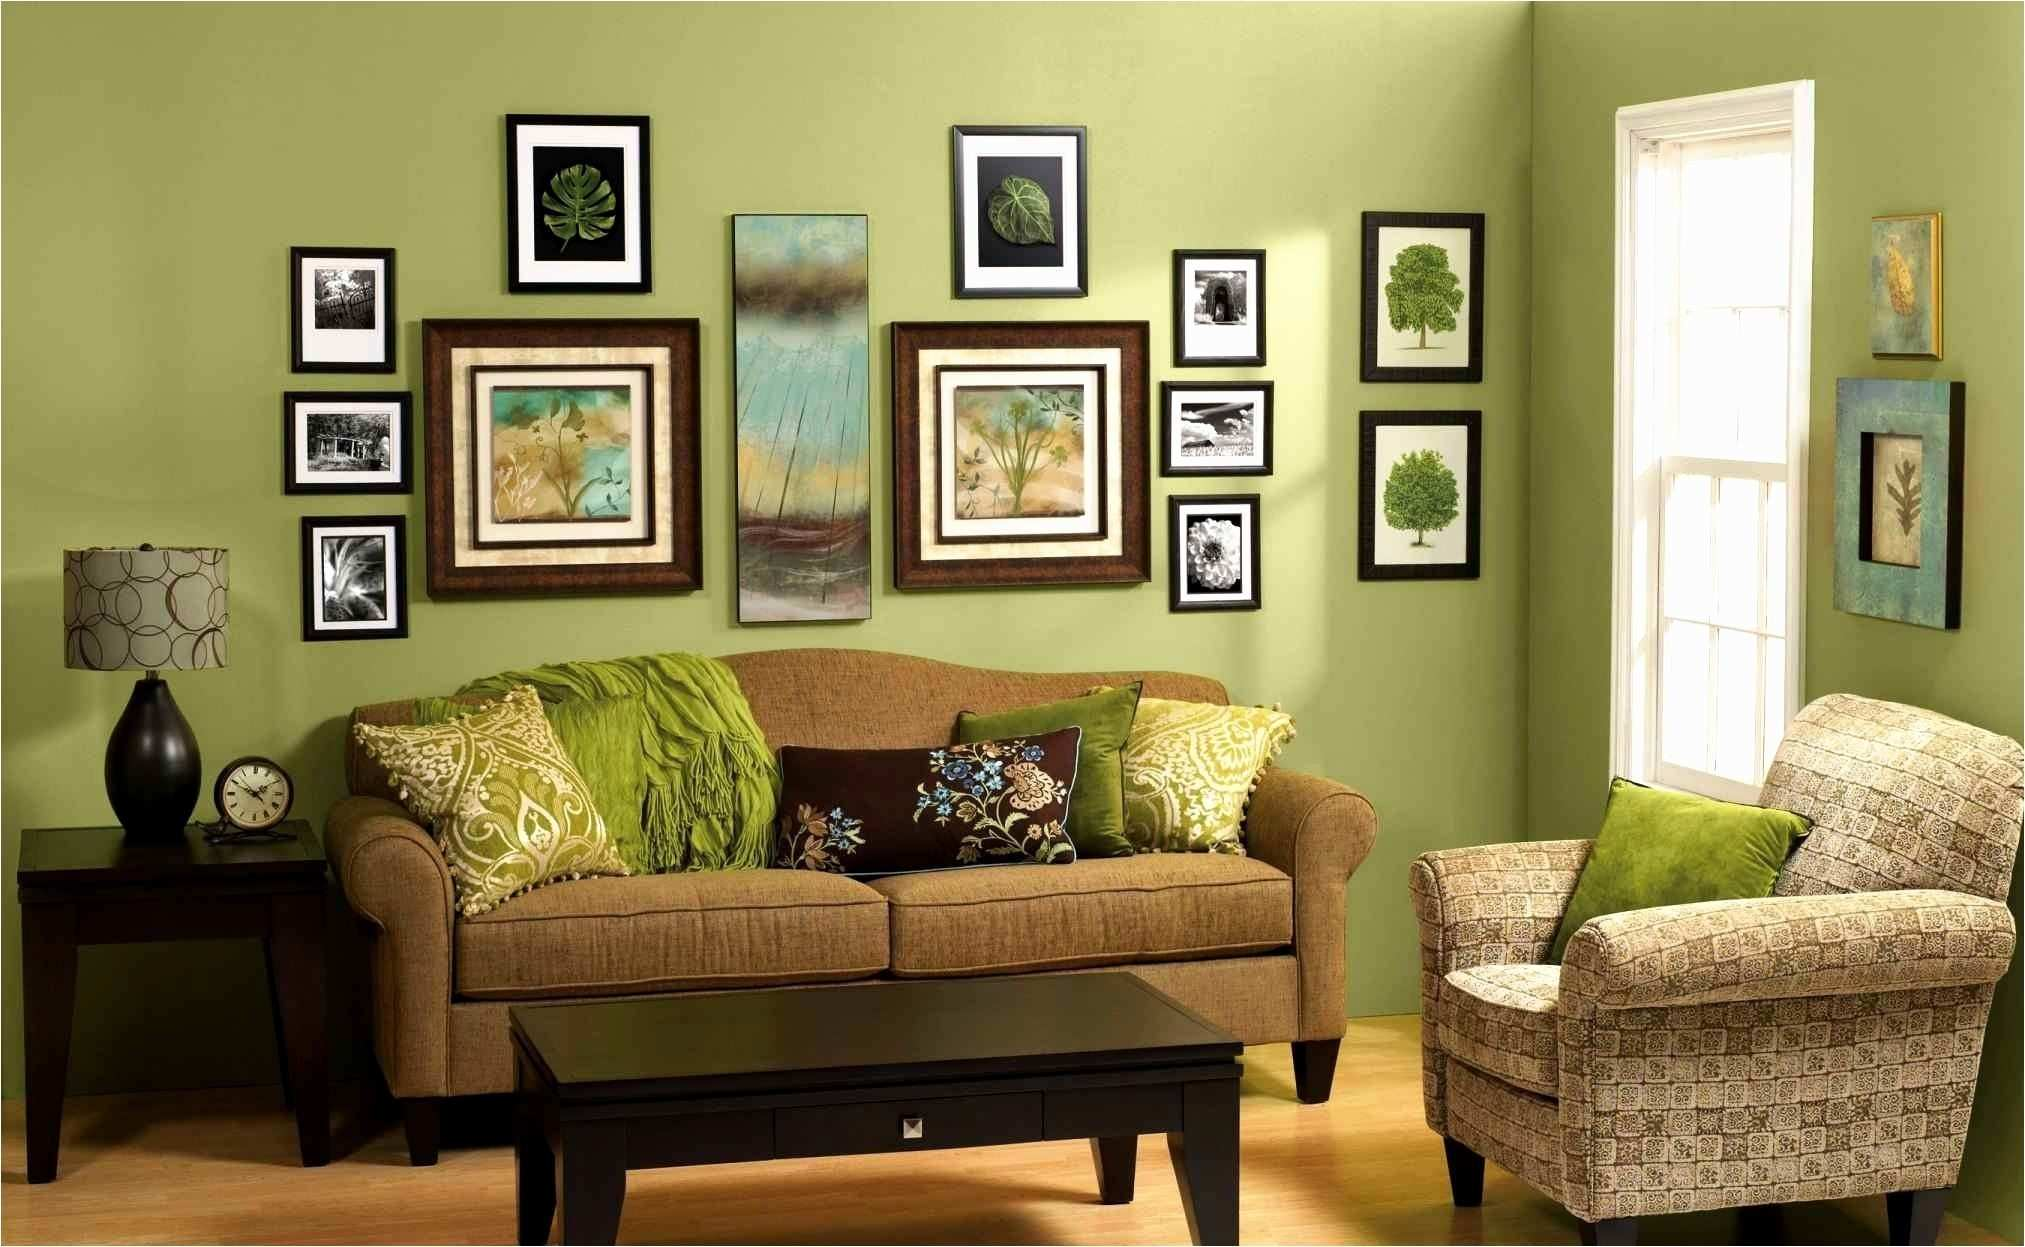 Wall Accents for Living Room Lovely Wall Decorating Ideas for Living Rooms Fresh Wall Decorations for